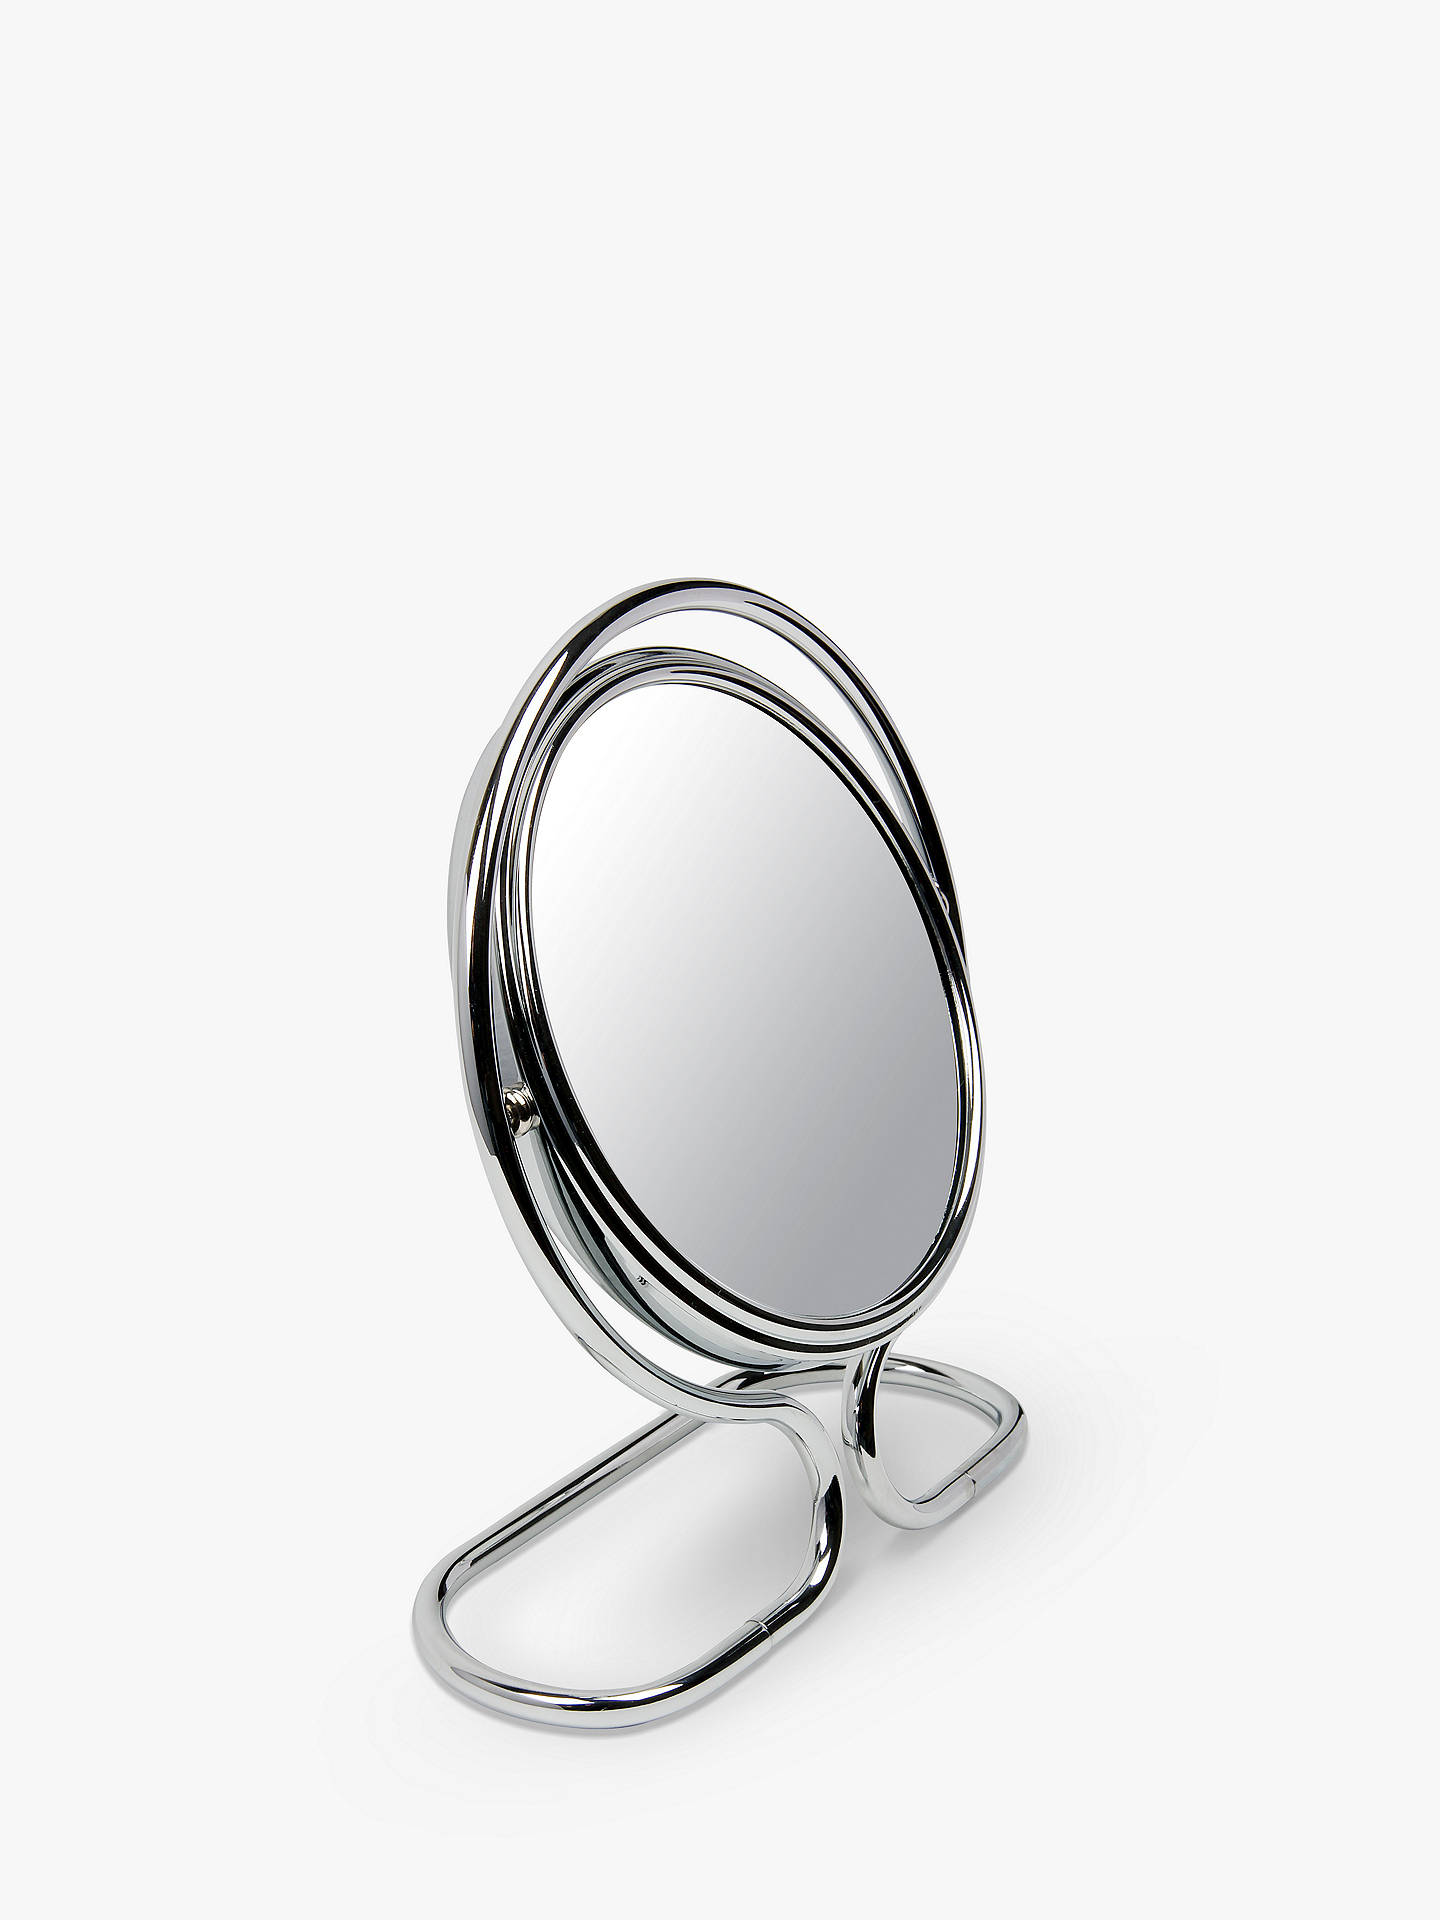 BuyJohn Lewis & Partners Shaving 10 x Magnifying Mirror, Chrome Online at johnlewis.com